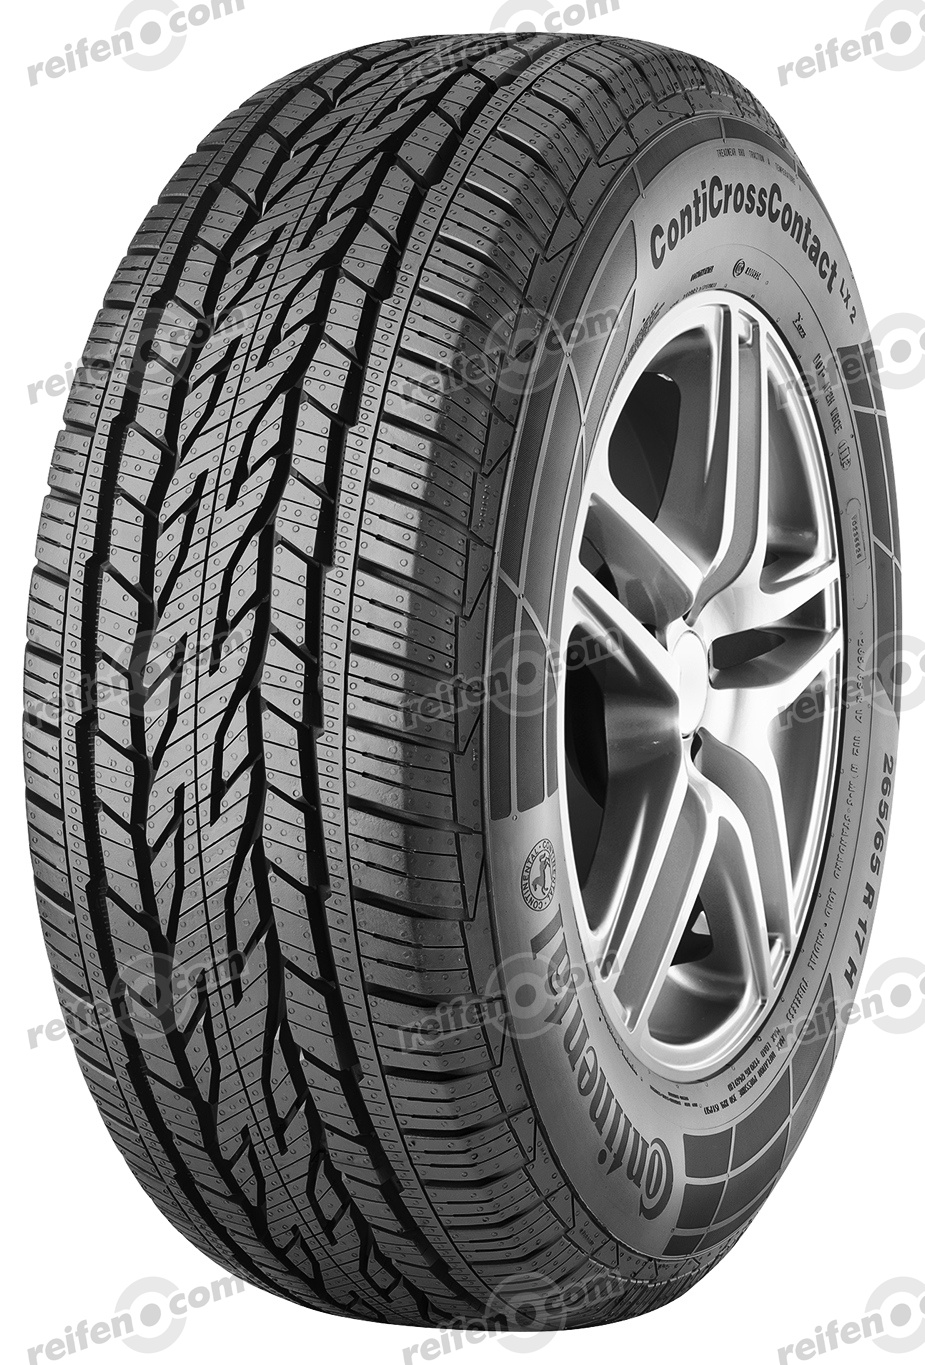 235/70 R15 103T CrossContact LX 2 FR BSW  CrossContact LX 2 FR BSW